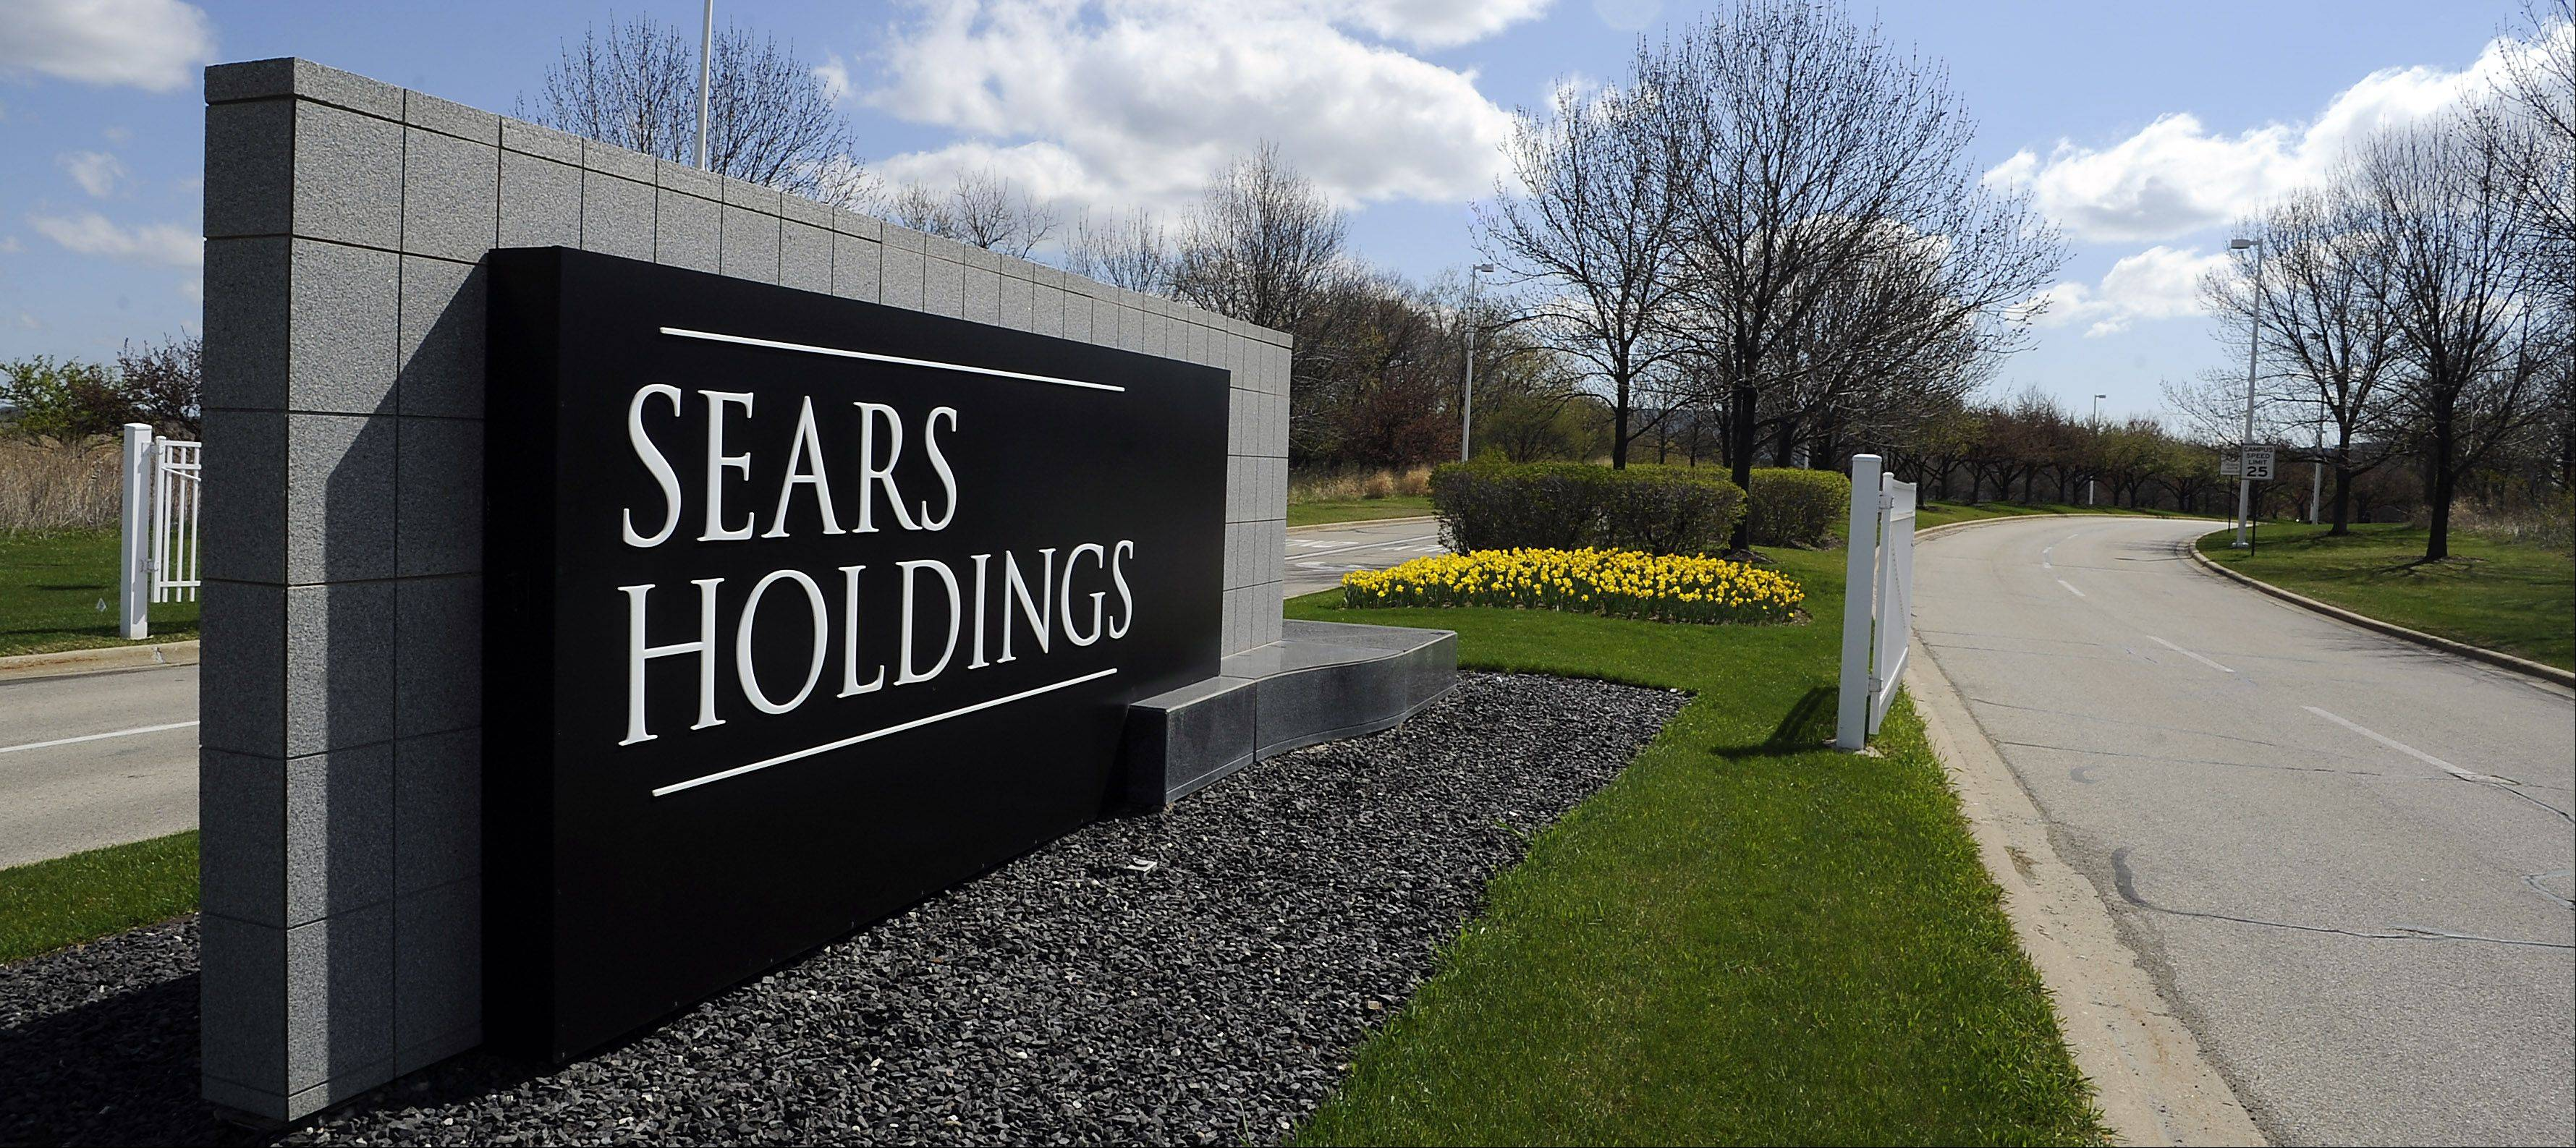 Hoffman Estates-based Sears Holdings Corp. is seeking a term loan of as much as $1 billion to pay down borrowings under a revolving credit line.